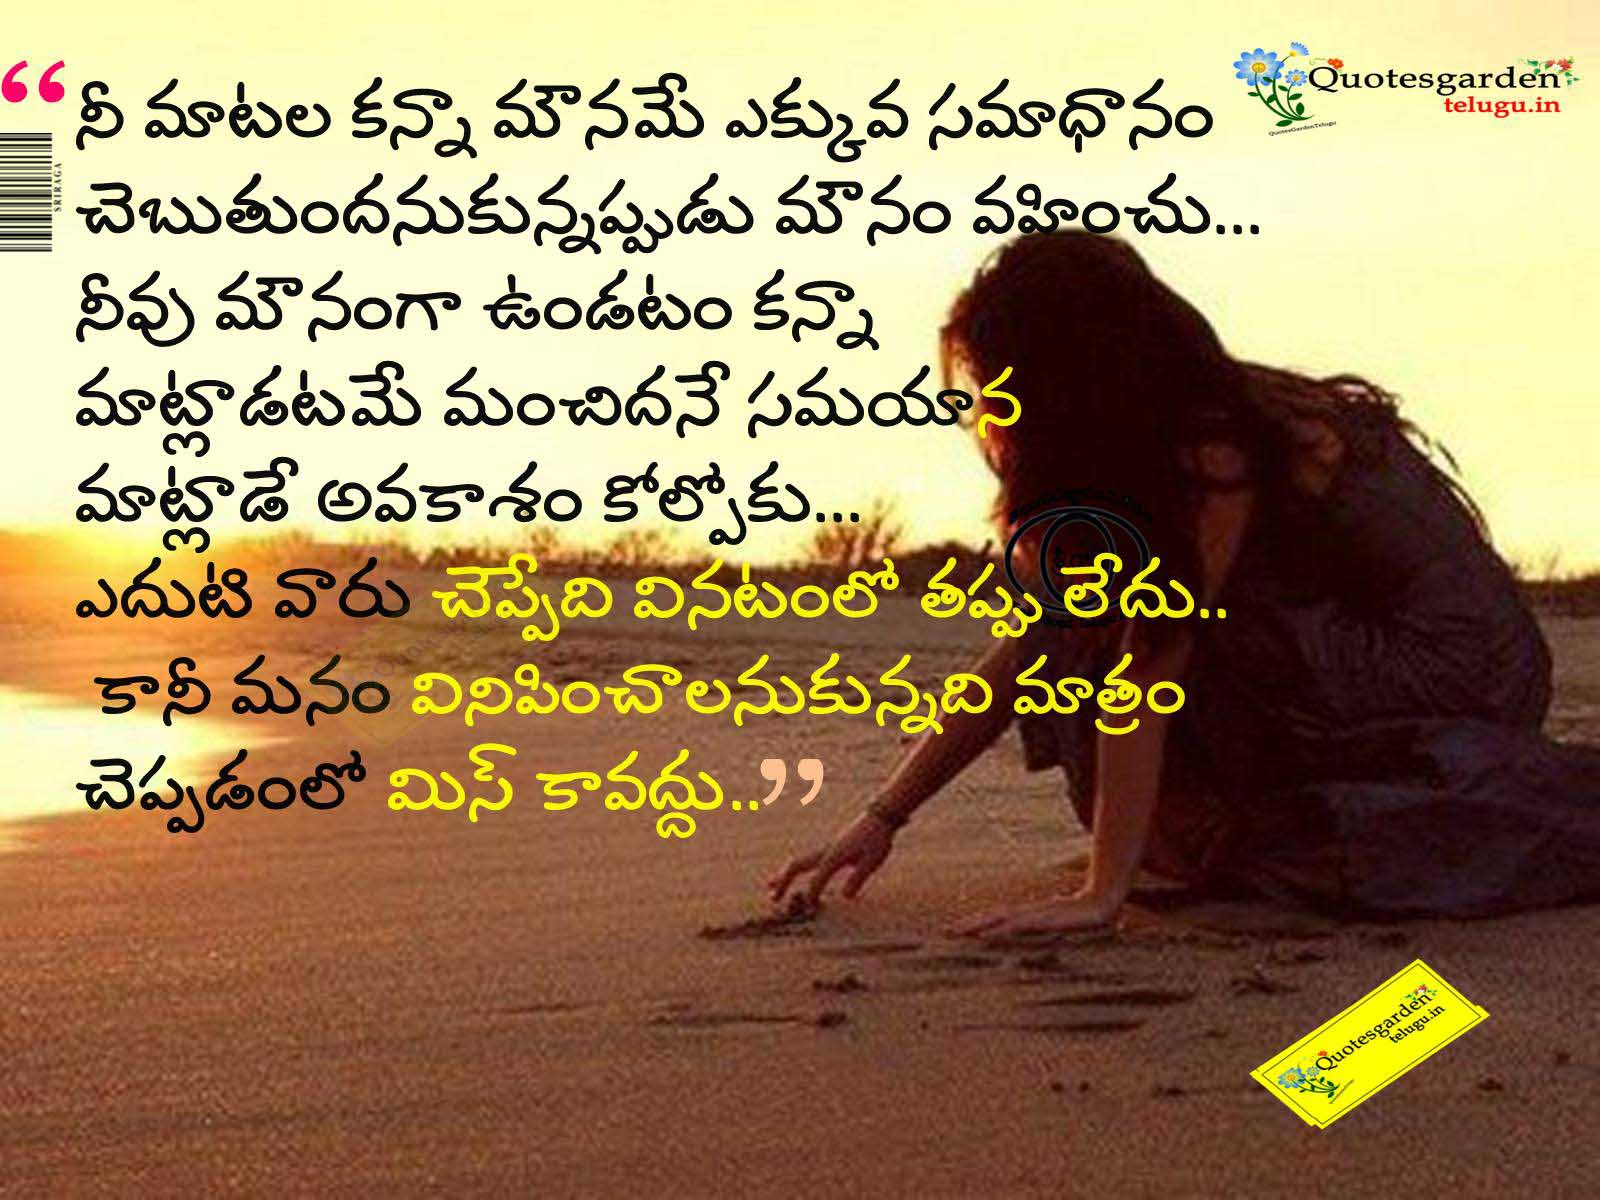 Best Telugu Inspirational Life Quotes With Images Quotes Garden